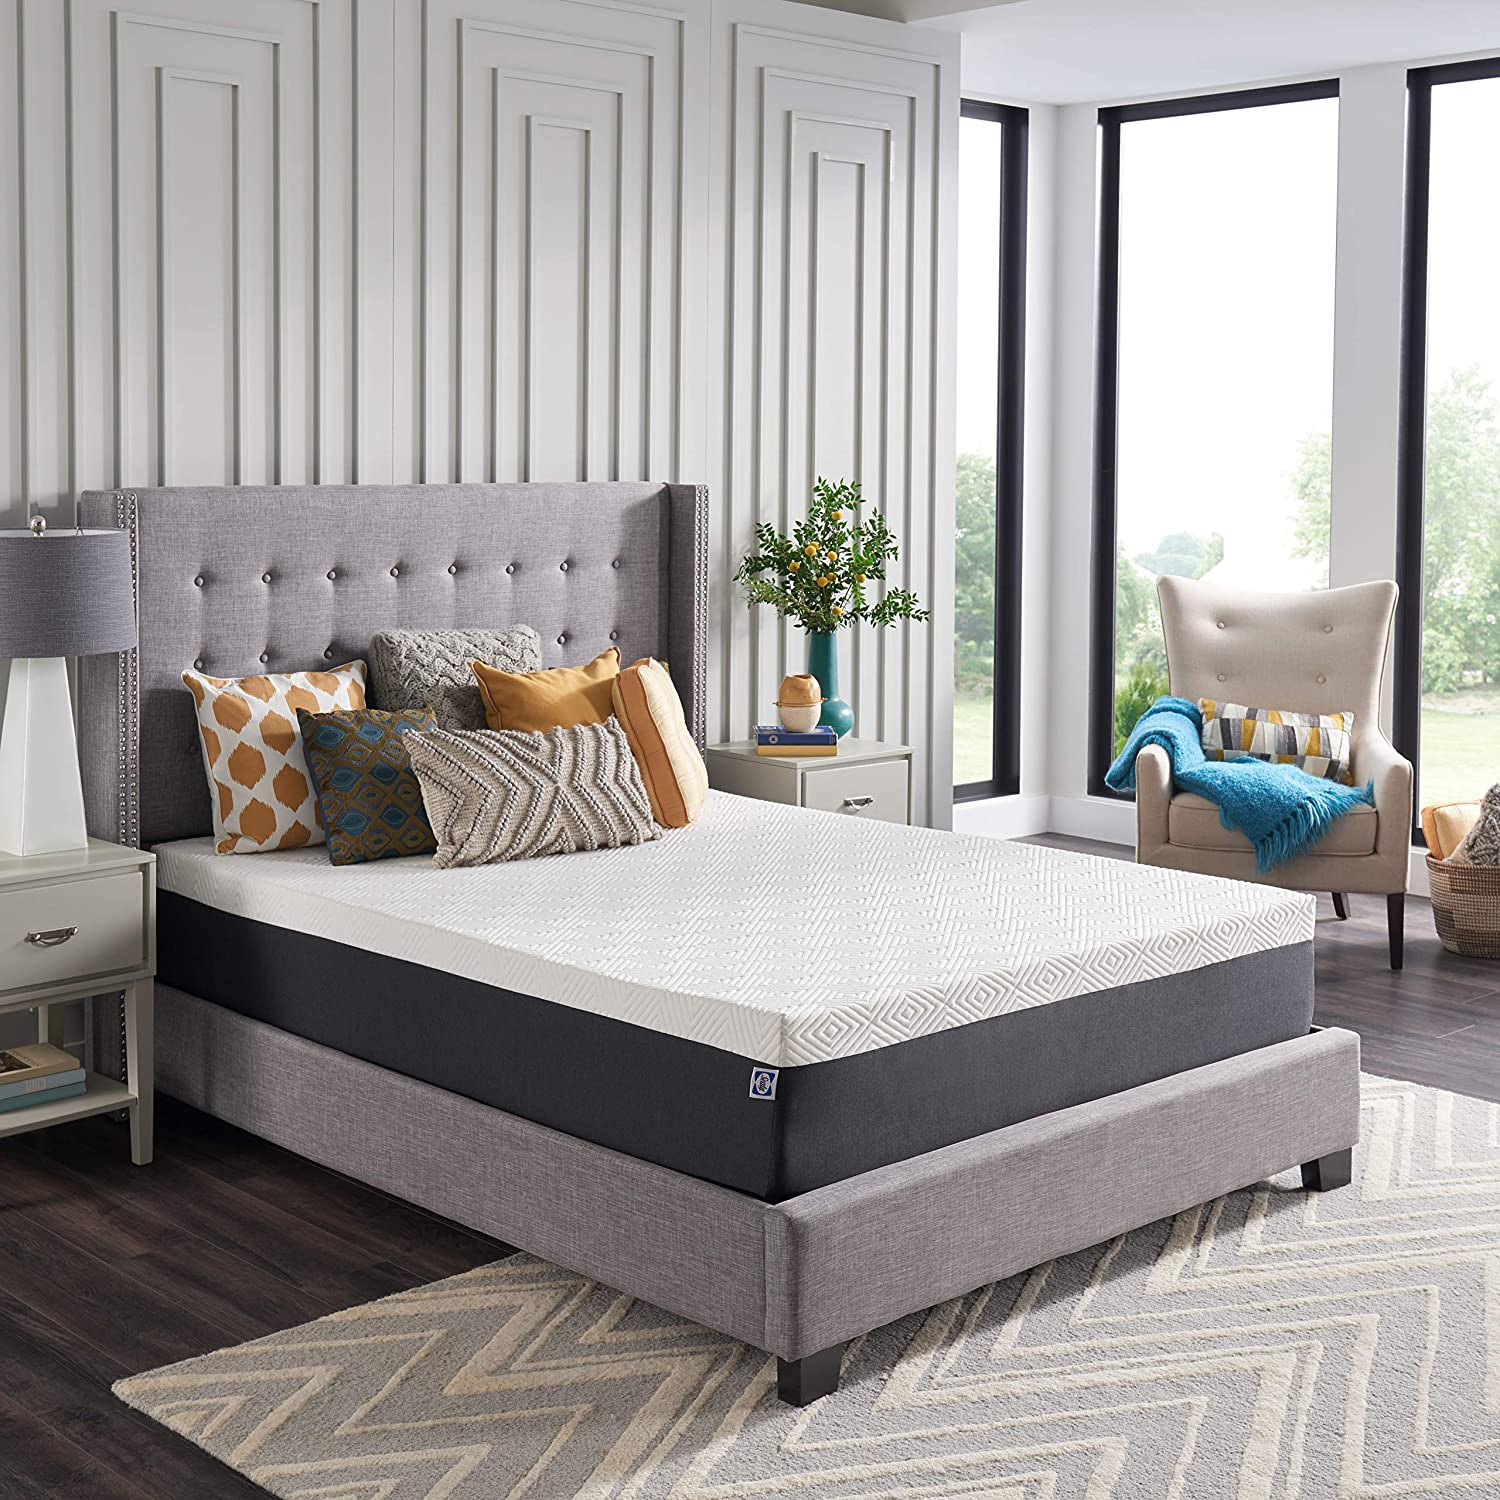 """Best Bed in a box: Sealy Hybrid Bed in a Box CopperChill [12"""" Medium]"""